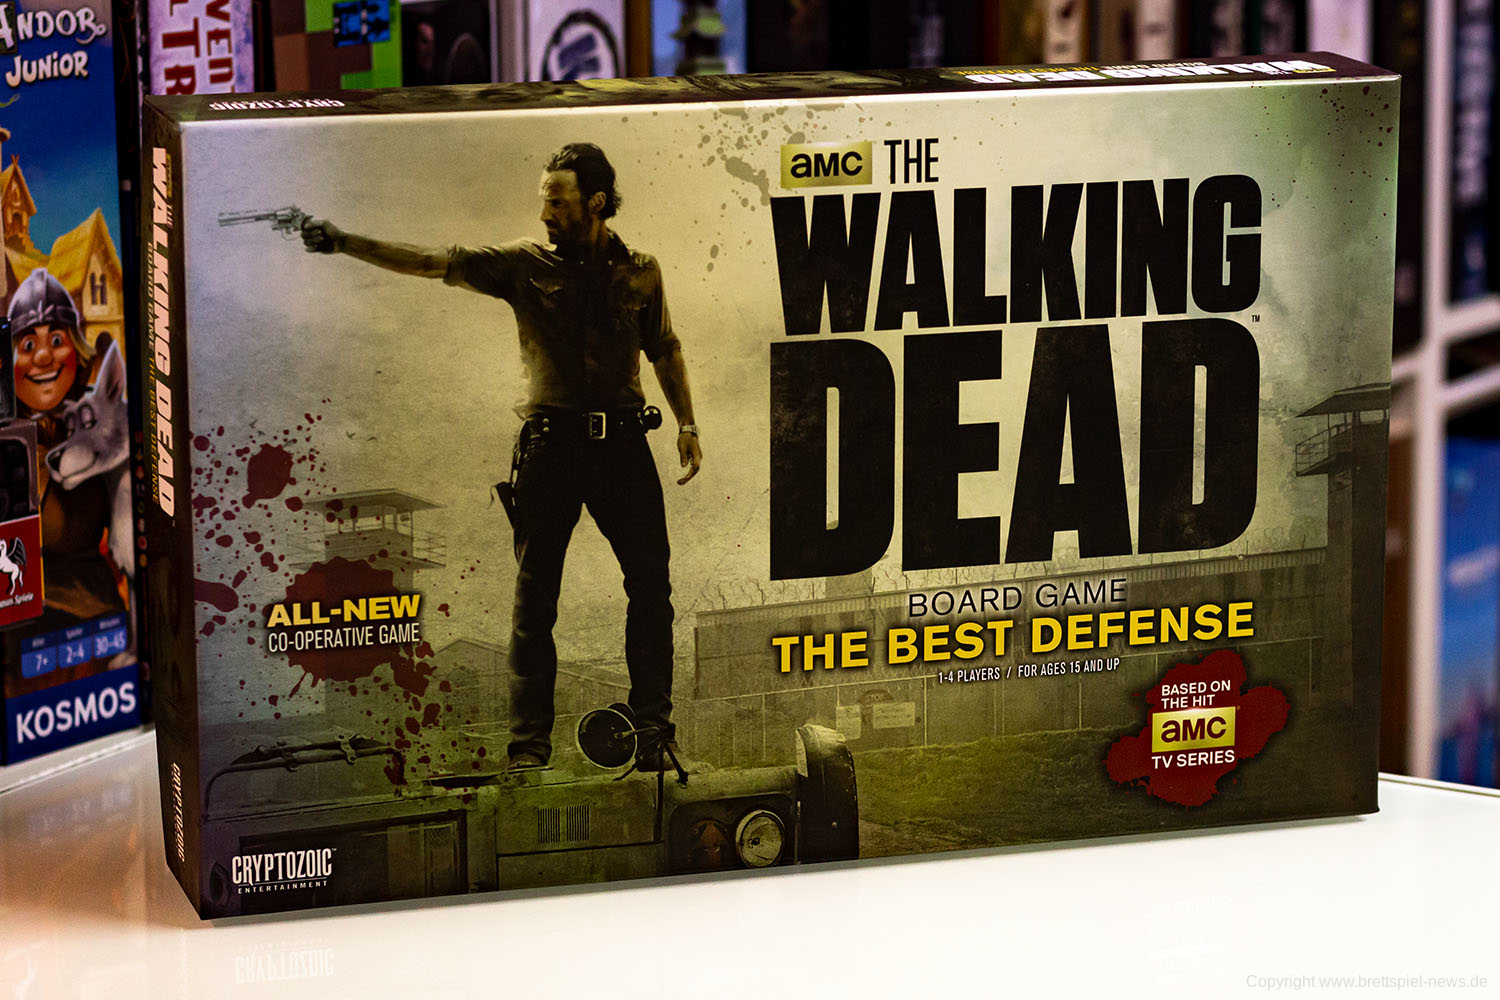 THE WALKING DEAD BOARD GAME: THE BEST DEFENSE // Bilder vom Spiel